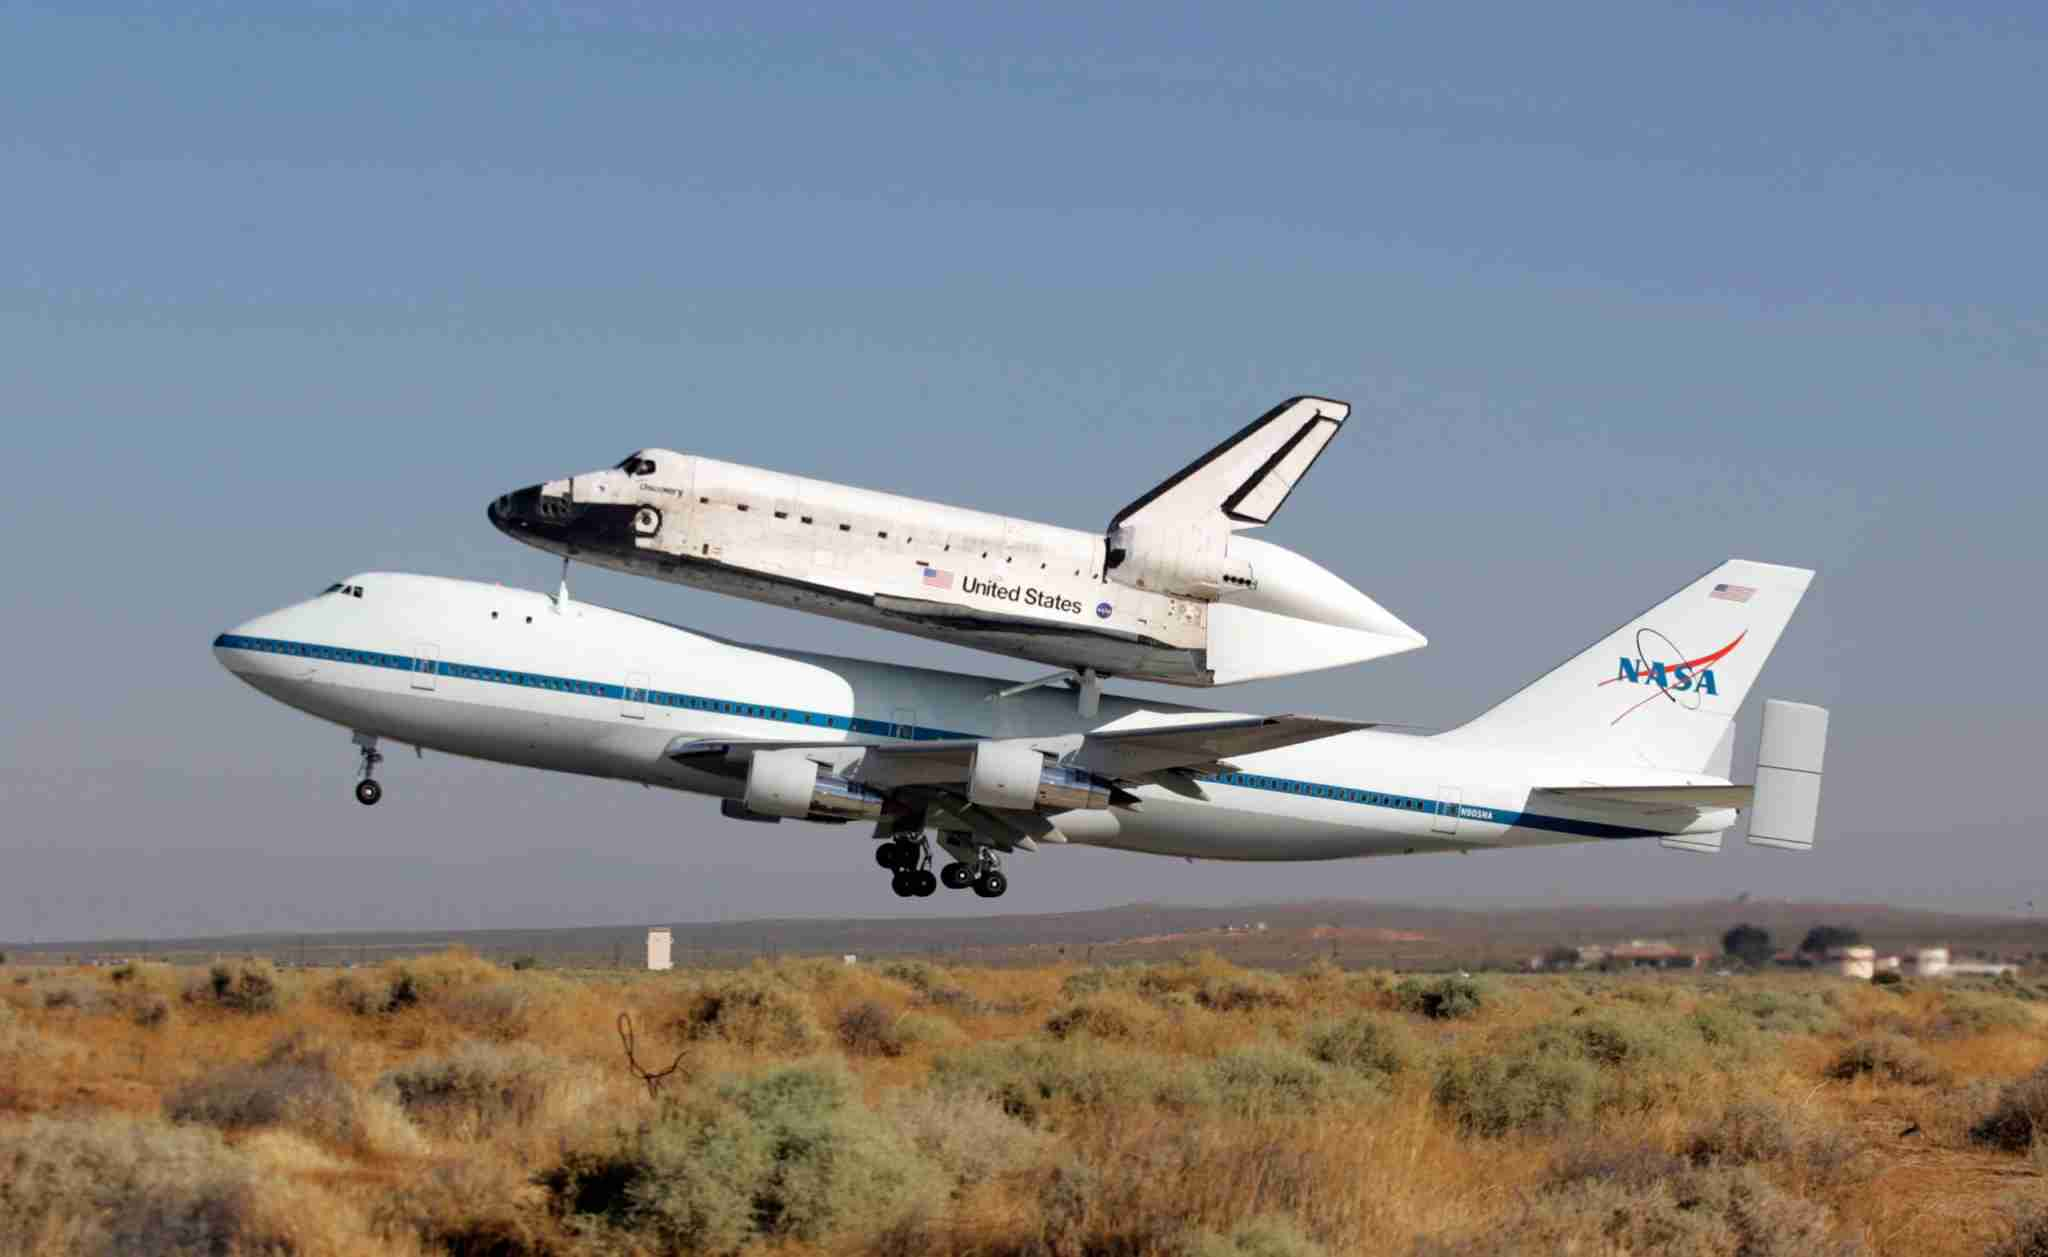 Space Shuttle Discovery departed from runway 22 at NASAs Dryden Flight Research Center at Edwards Air Force Base atop a modified Boeing 747 Shuttle Carrier Aircraft at 8:31a.m. Friday, August 19, 2005. (Photo by Stephen Osman/Los Angeles Times via Getty Images)